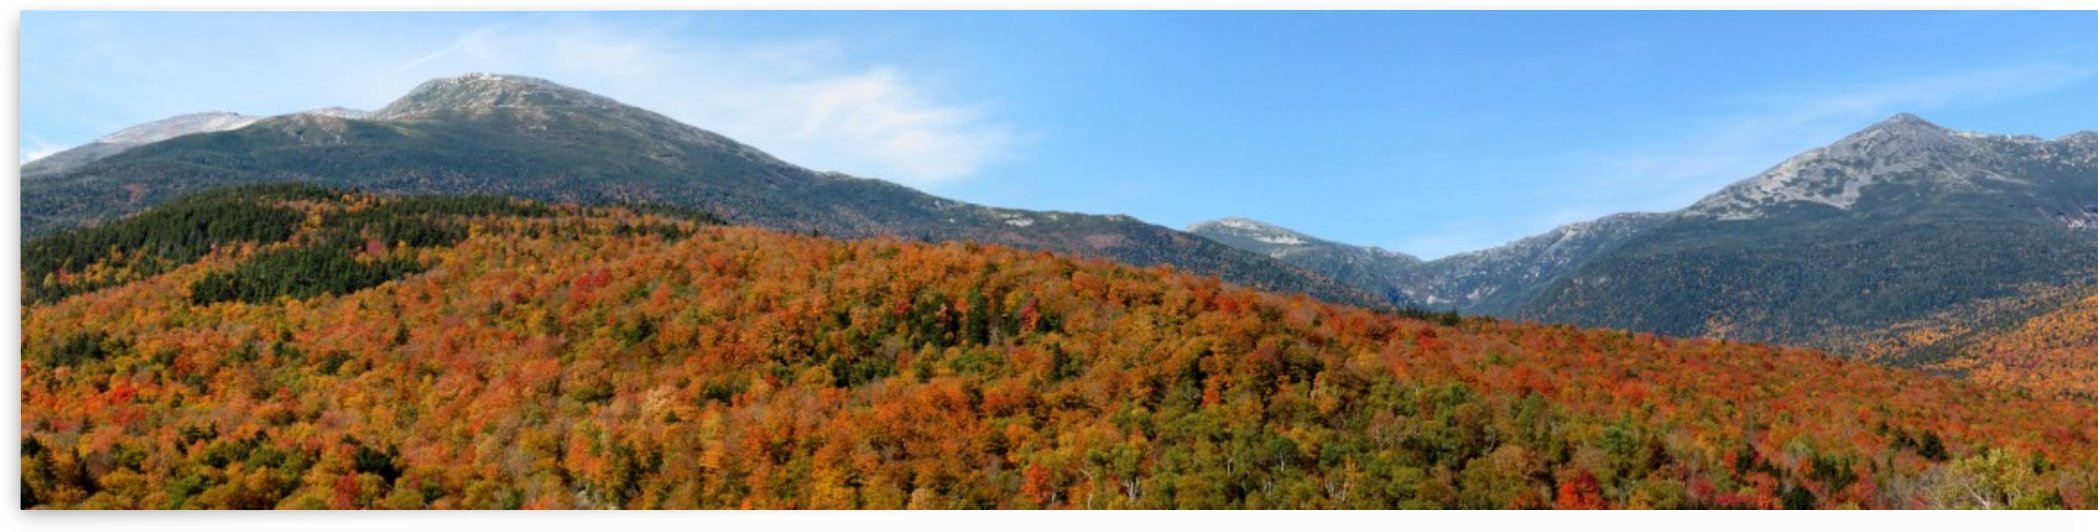 Presidential Range, New Hampshire, Oct. 3, 2013 by Doug McQuinn